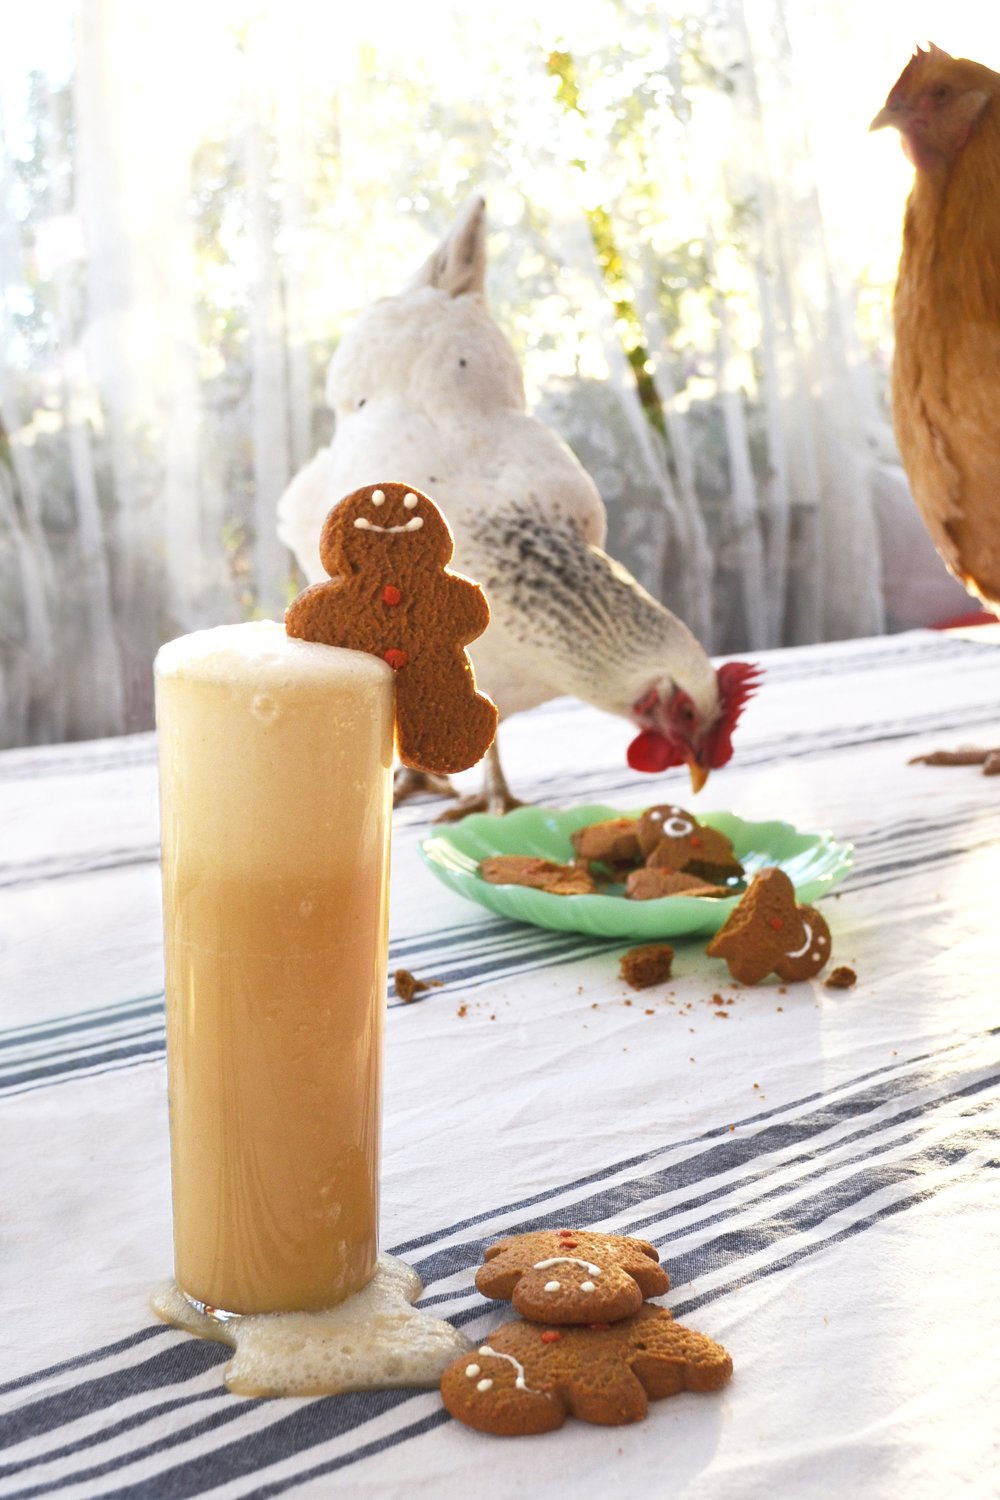 GINgerbread Man Fizz made with Bombay Sapphire #gin | drinkingwithchickens.com #AD